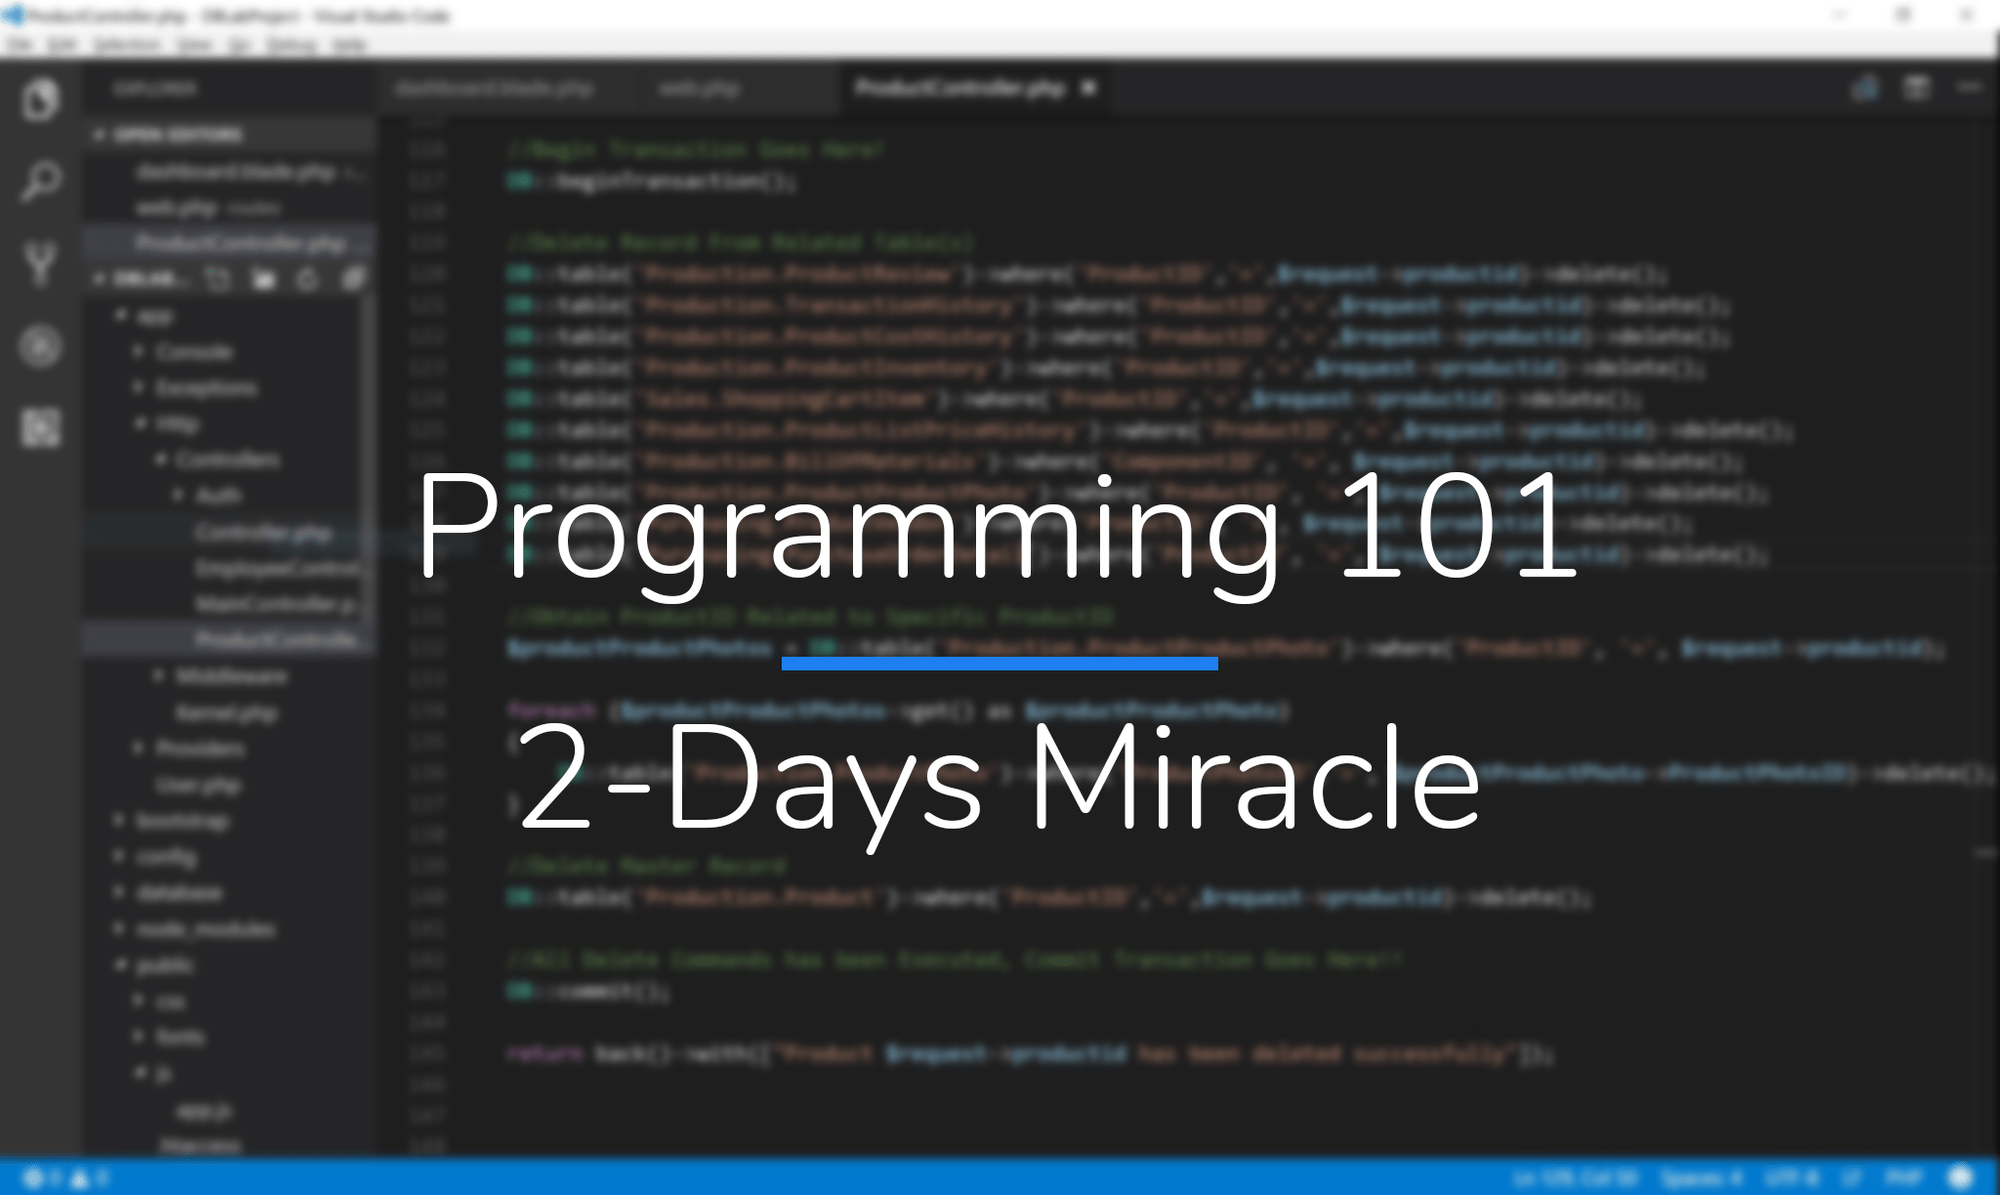 Programming 101 - 2-Days Miracle